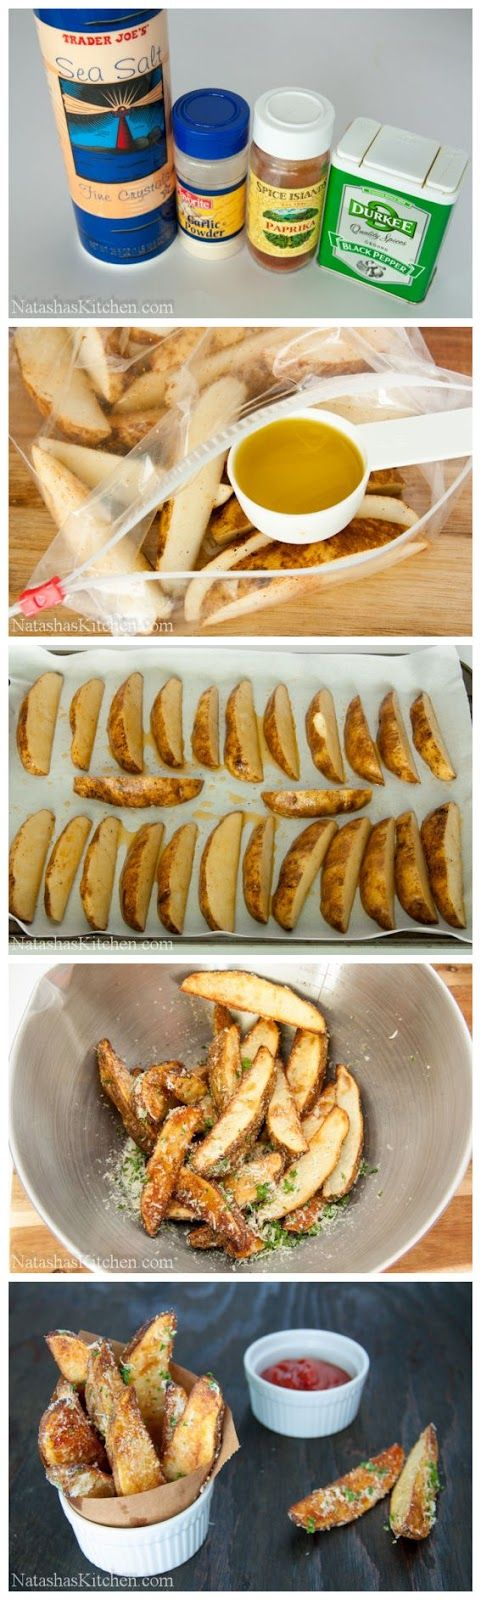 kiss recipe: Oven Baked Potato Wedges